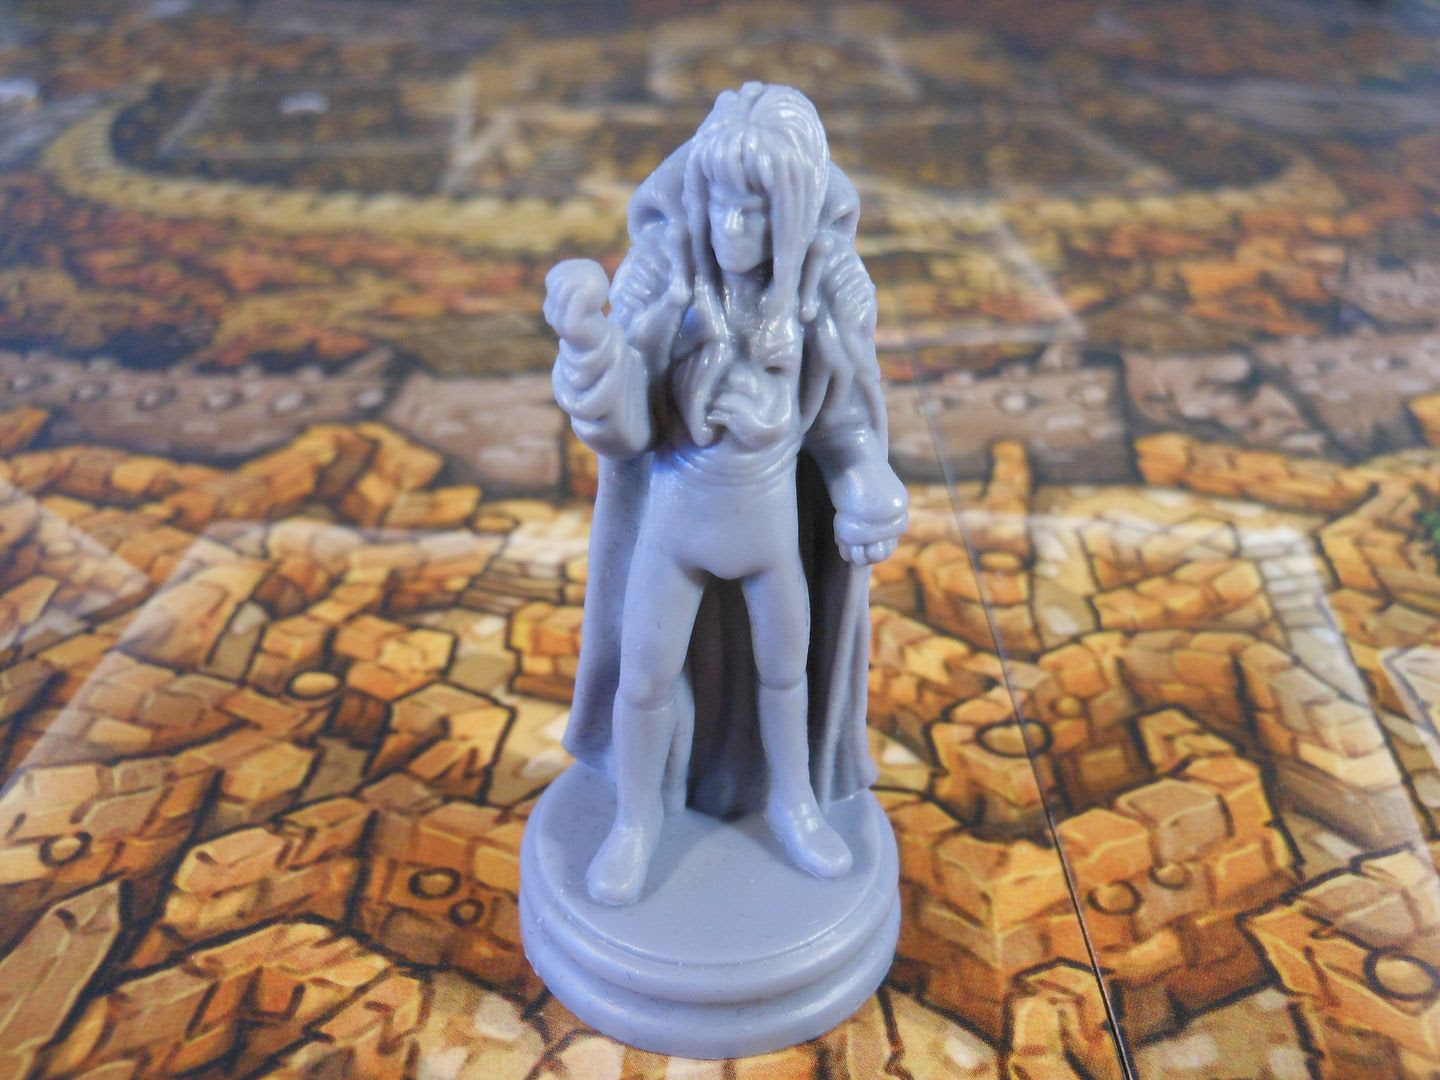 Jareth the Goblin King seeks to stop Sarah in Jim Henson's Labyrinth: The Board Game.